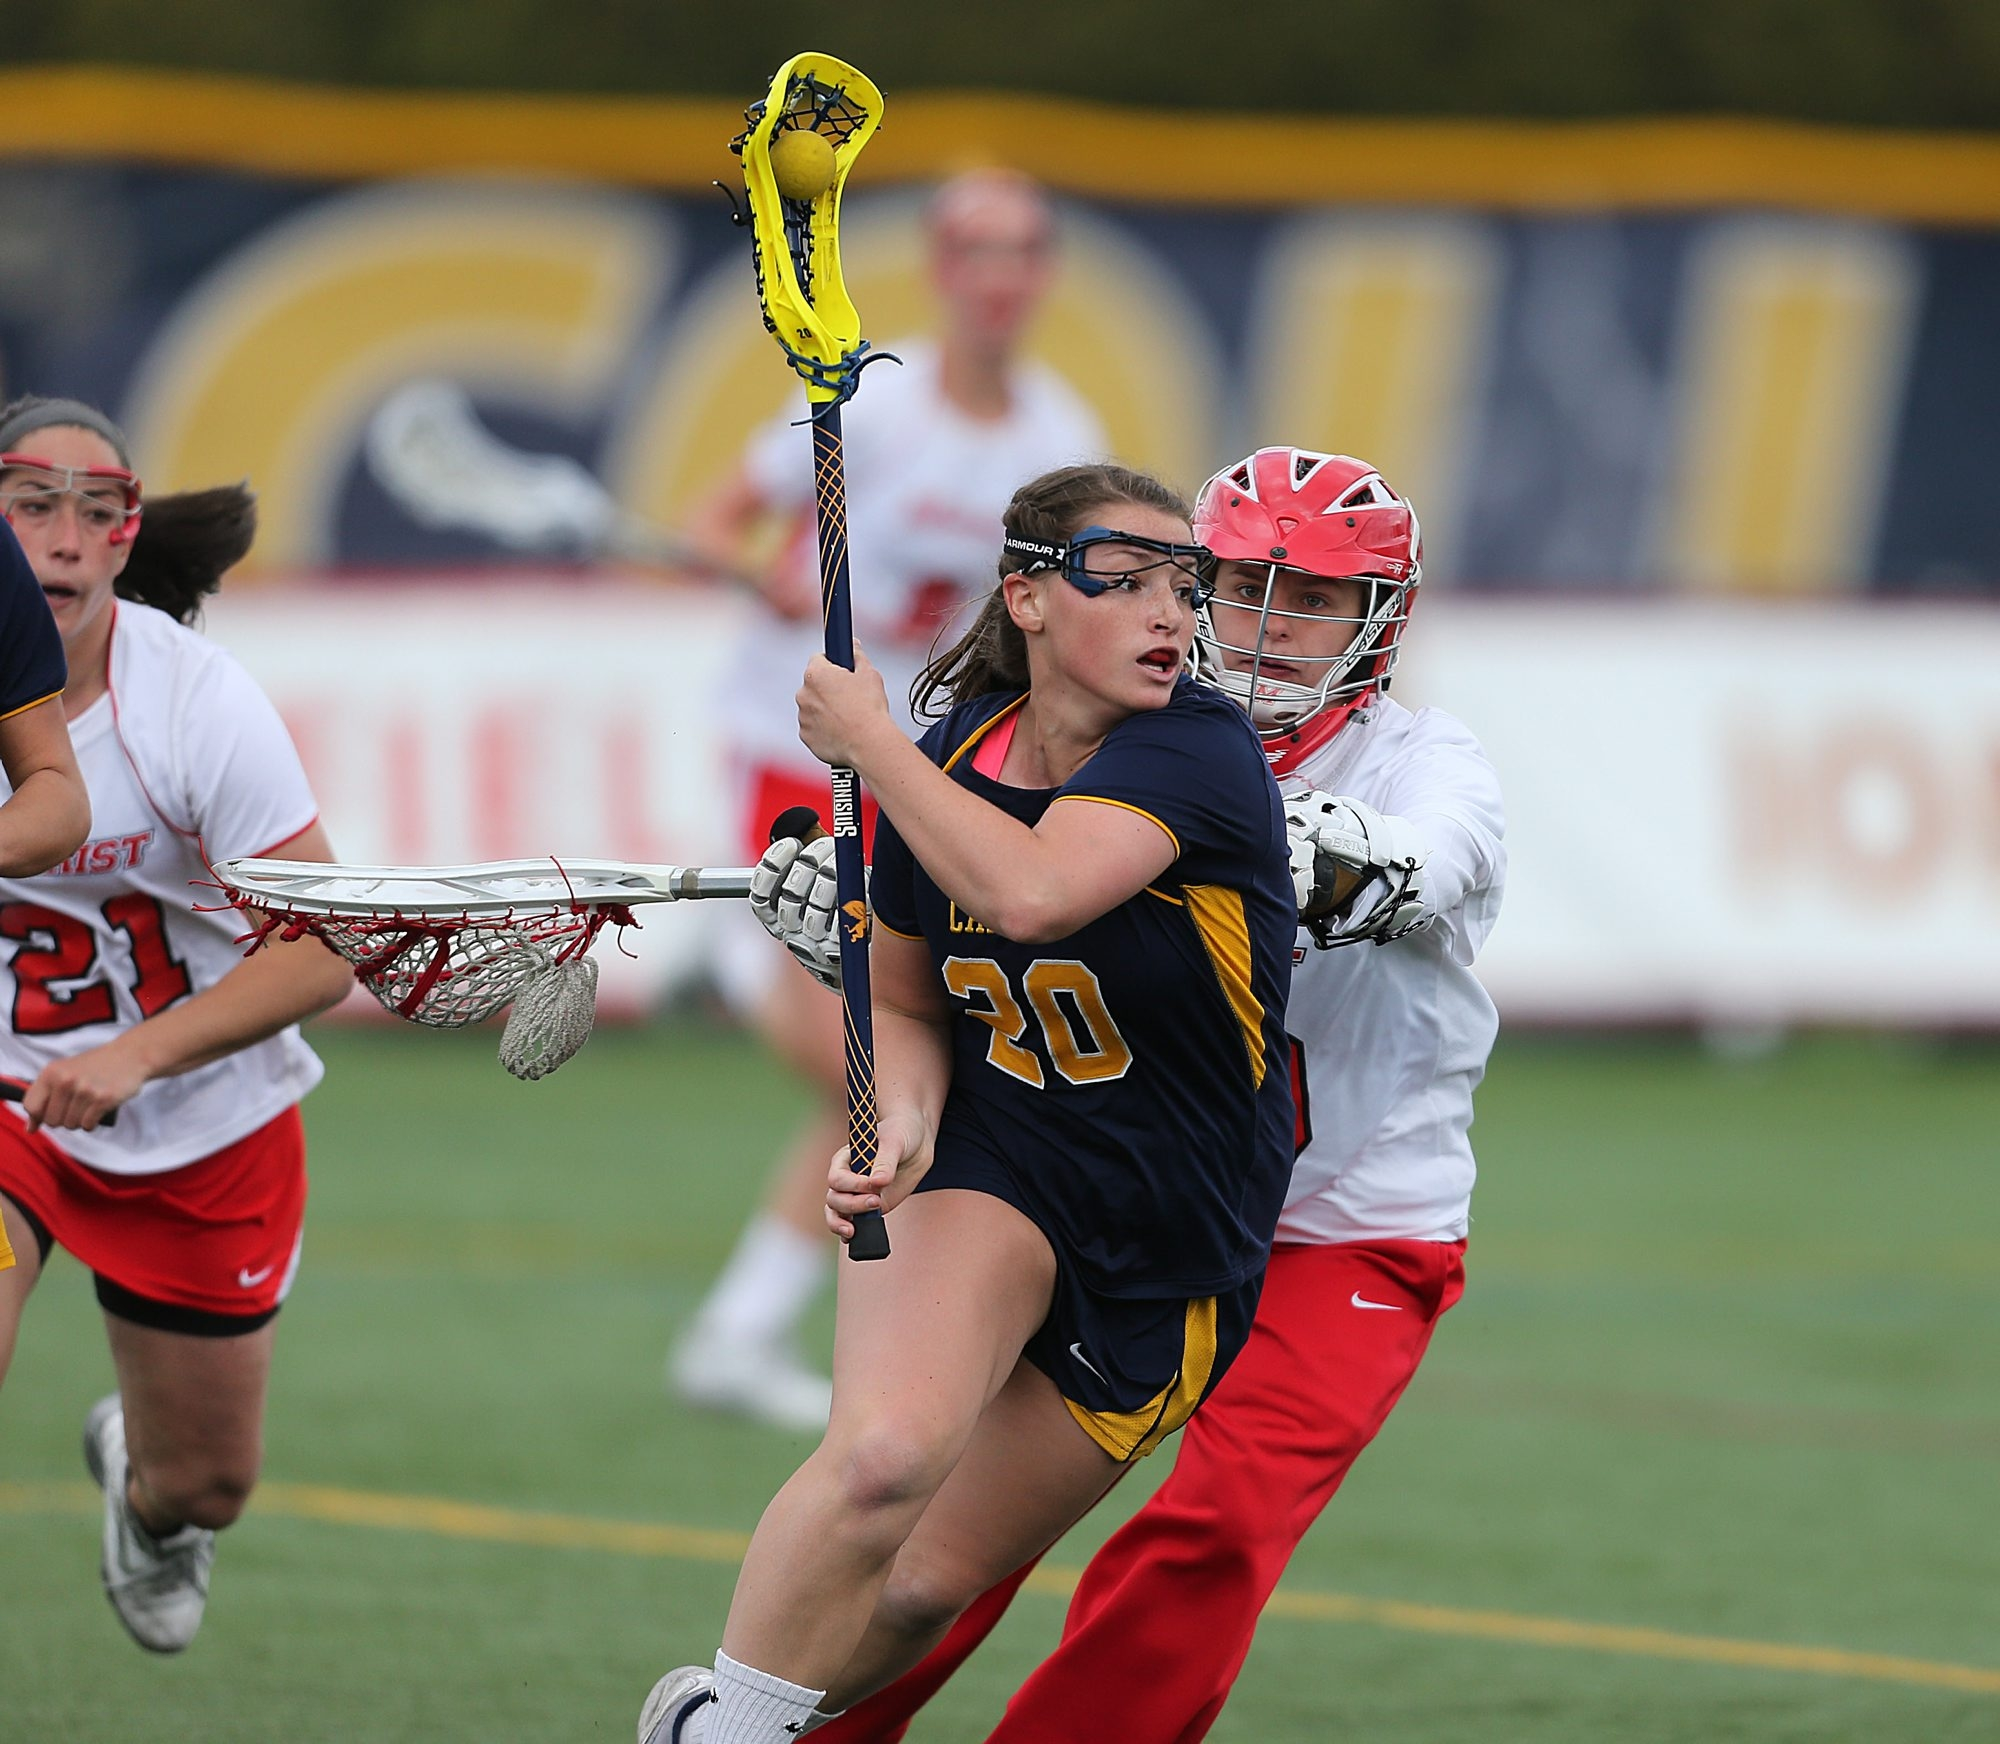 Canisius' Tori Quinn makes a  move on Marist goalkeeper Abigale Witczak during Sunday's MAAC Championship. The Golden Griffins won, 11-9. See a photo gallery at buffalonews.com